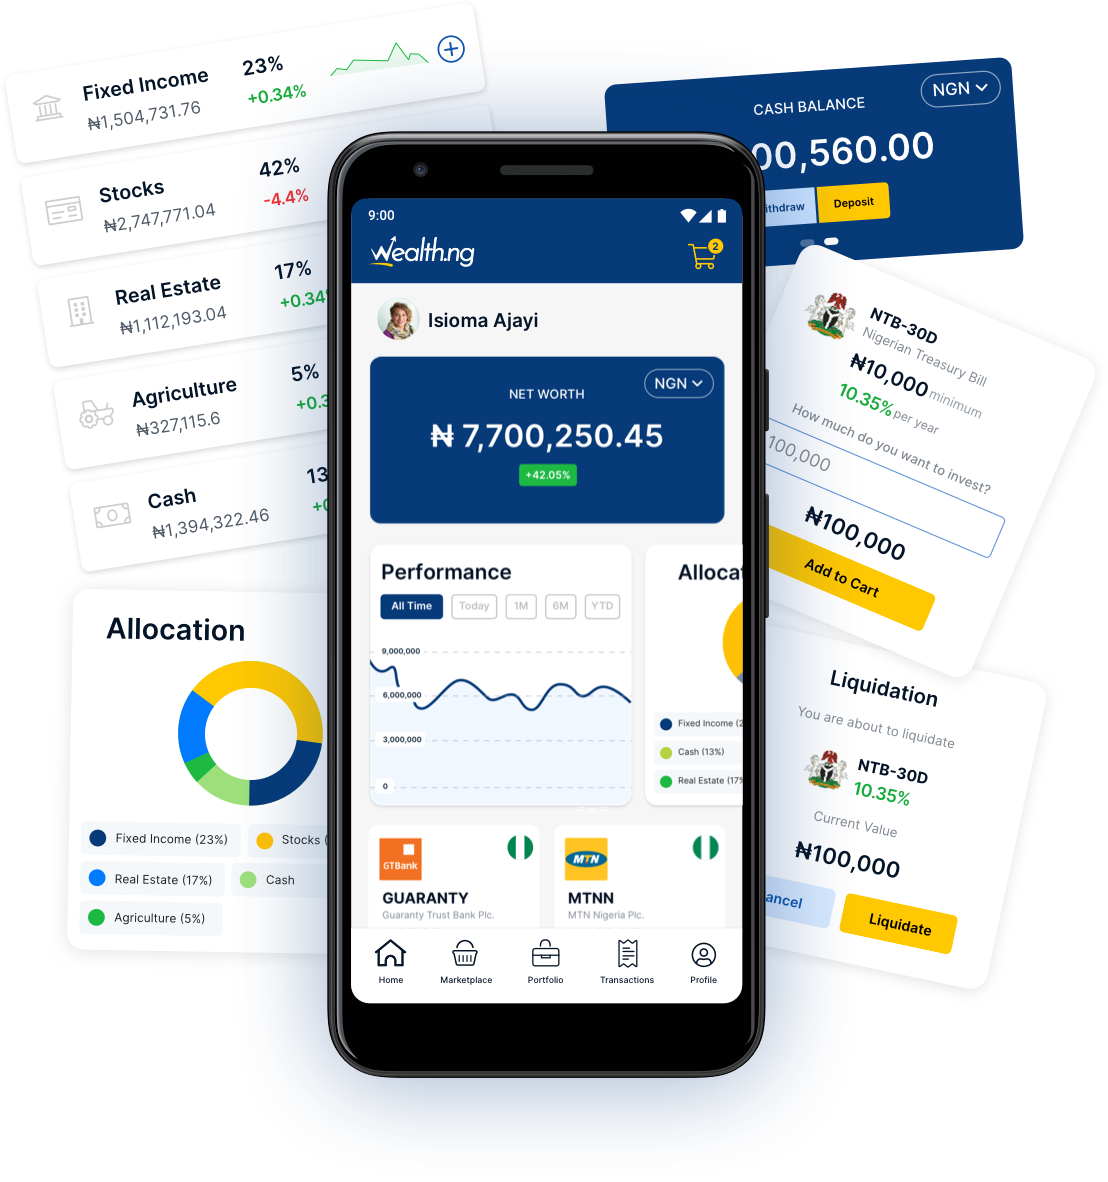 Wealth.ng Review 2020: Is This Investment Platform Right For You?